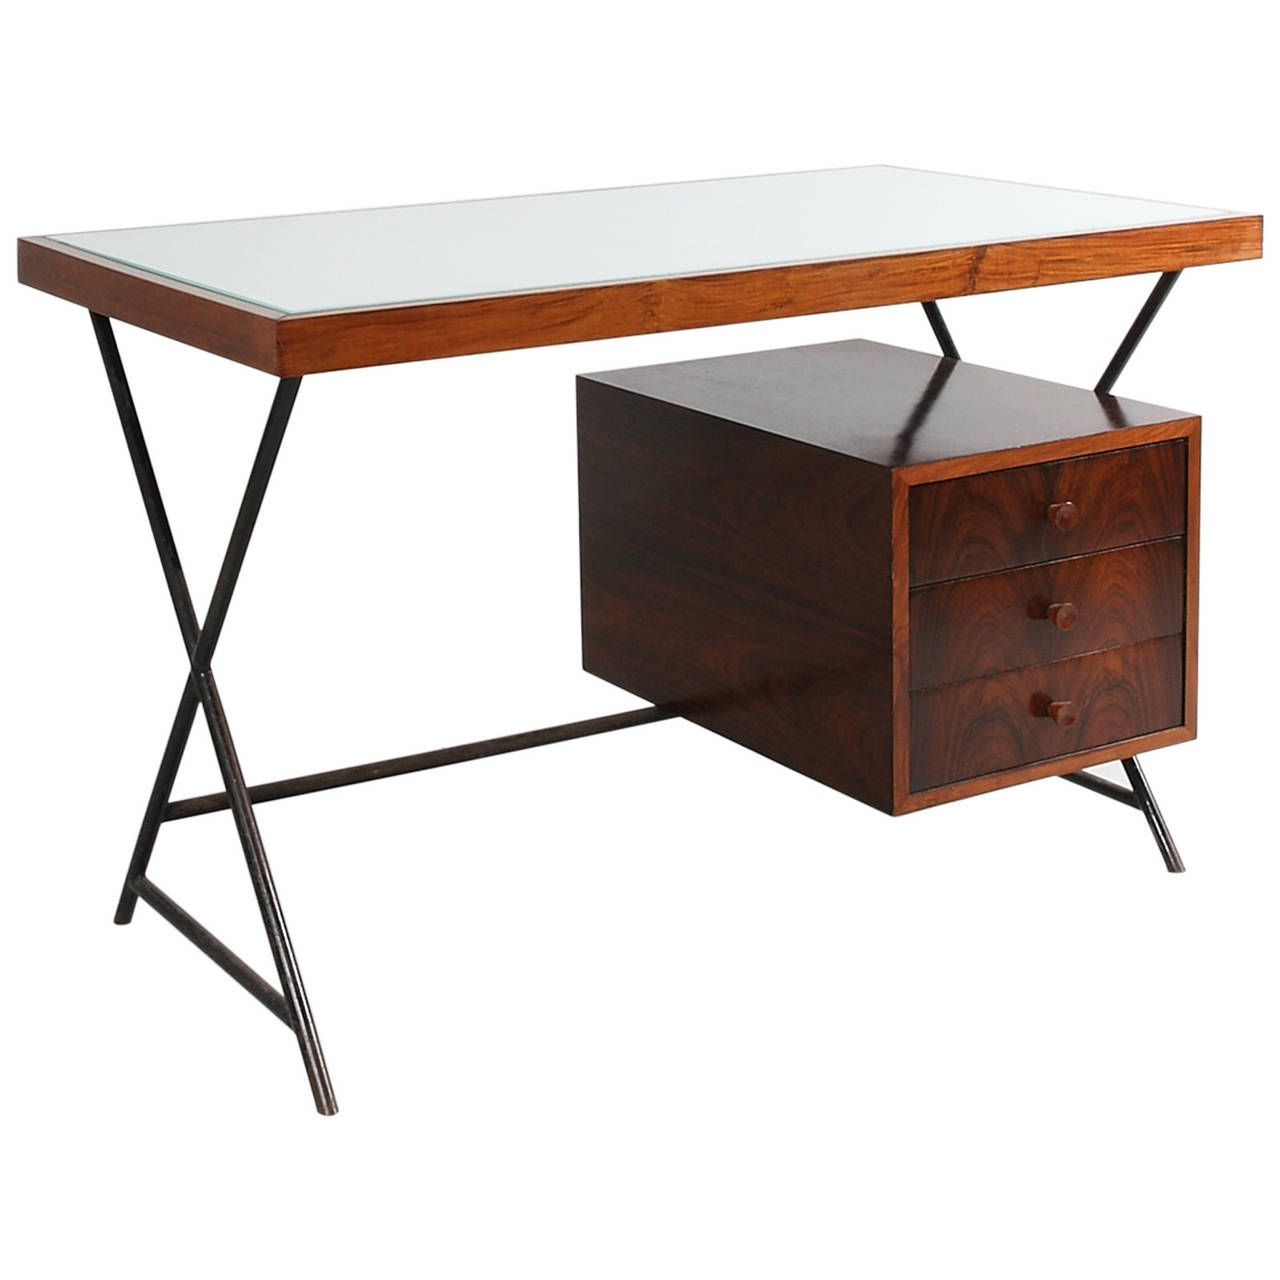 Rare Desk By Lina Bo Bardi C 1949 Writing Table Desks And Tables # Muebles Bustper